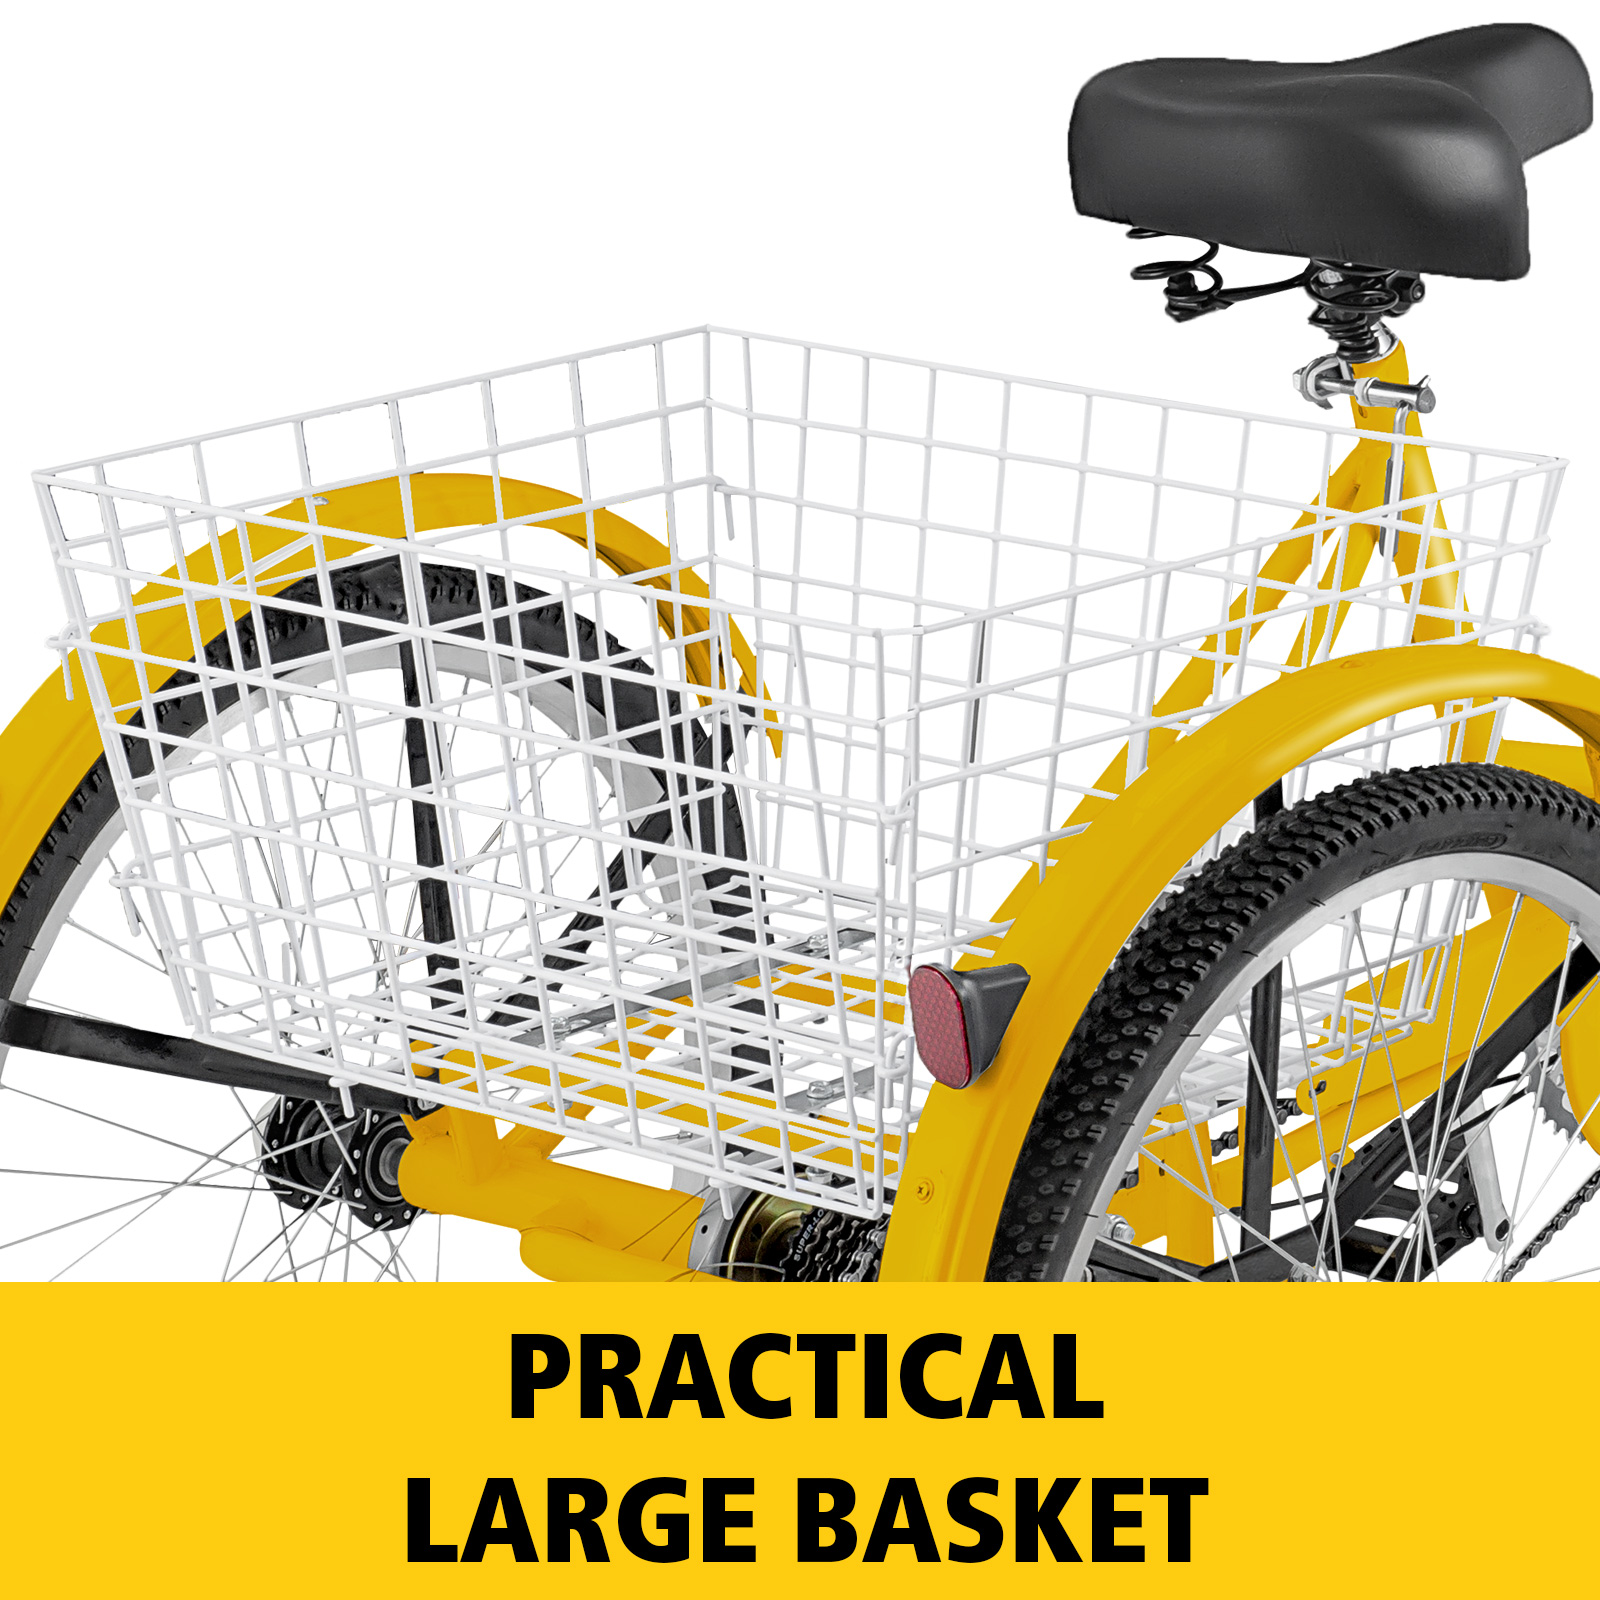 20-24-26-034-Adult-Tricycle-1-7-Speed-3-Wheel-Large-Basket-For-Shopping-Optional thumbnail 223